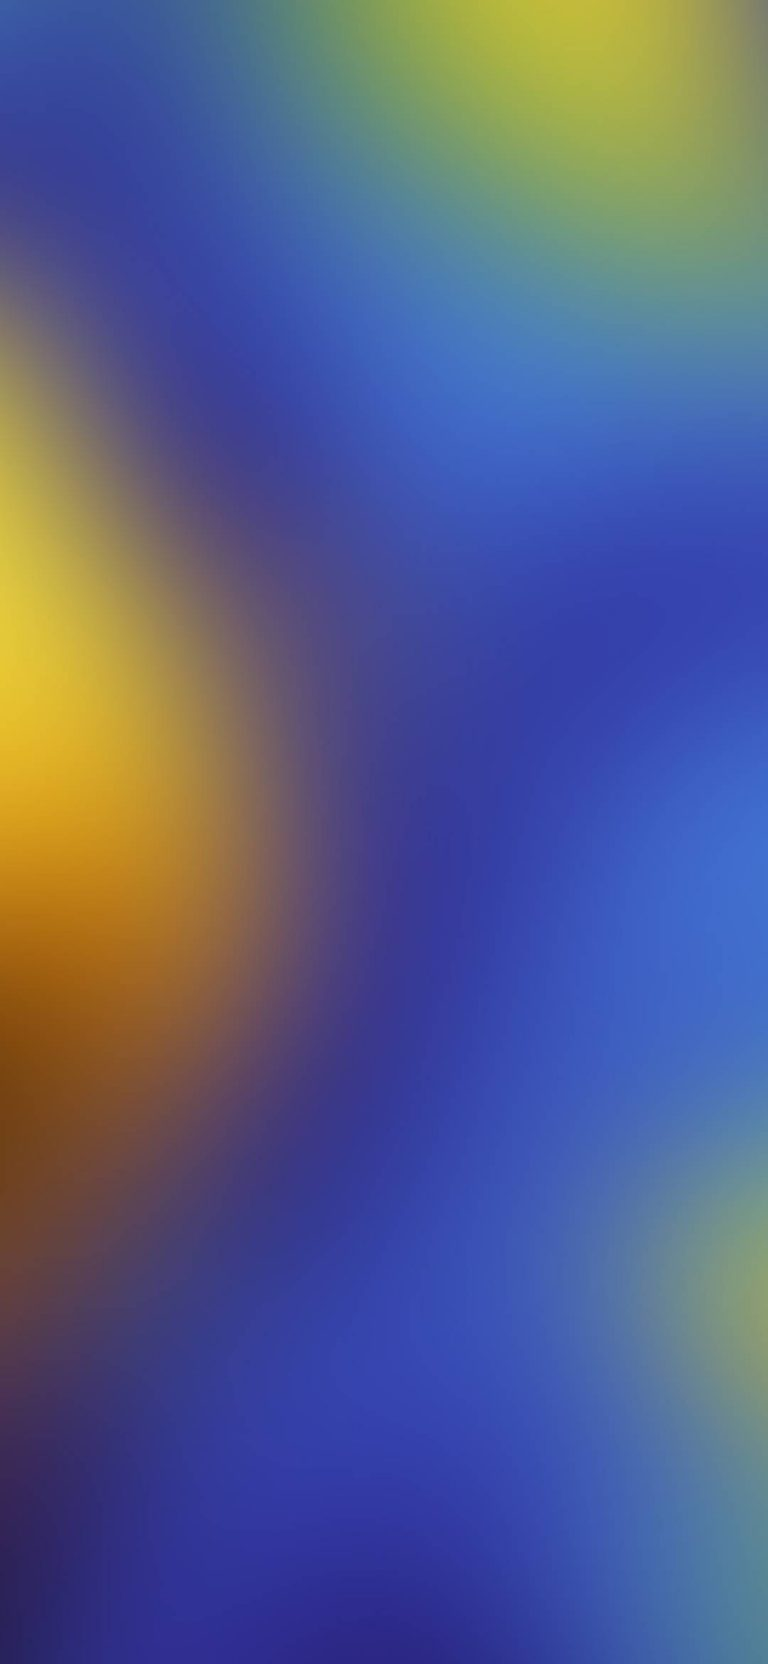 Xiaomi Mi Mix 3 Stock Wallpaper 002 1080x2340 768x1664